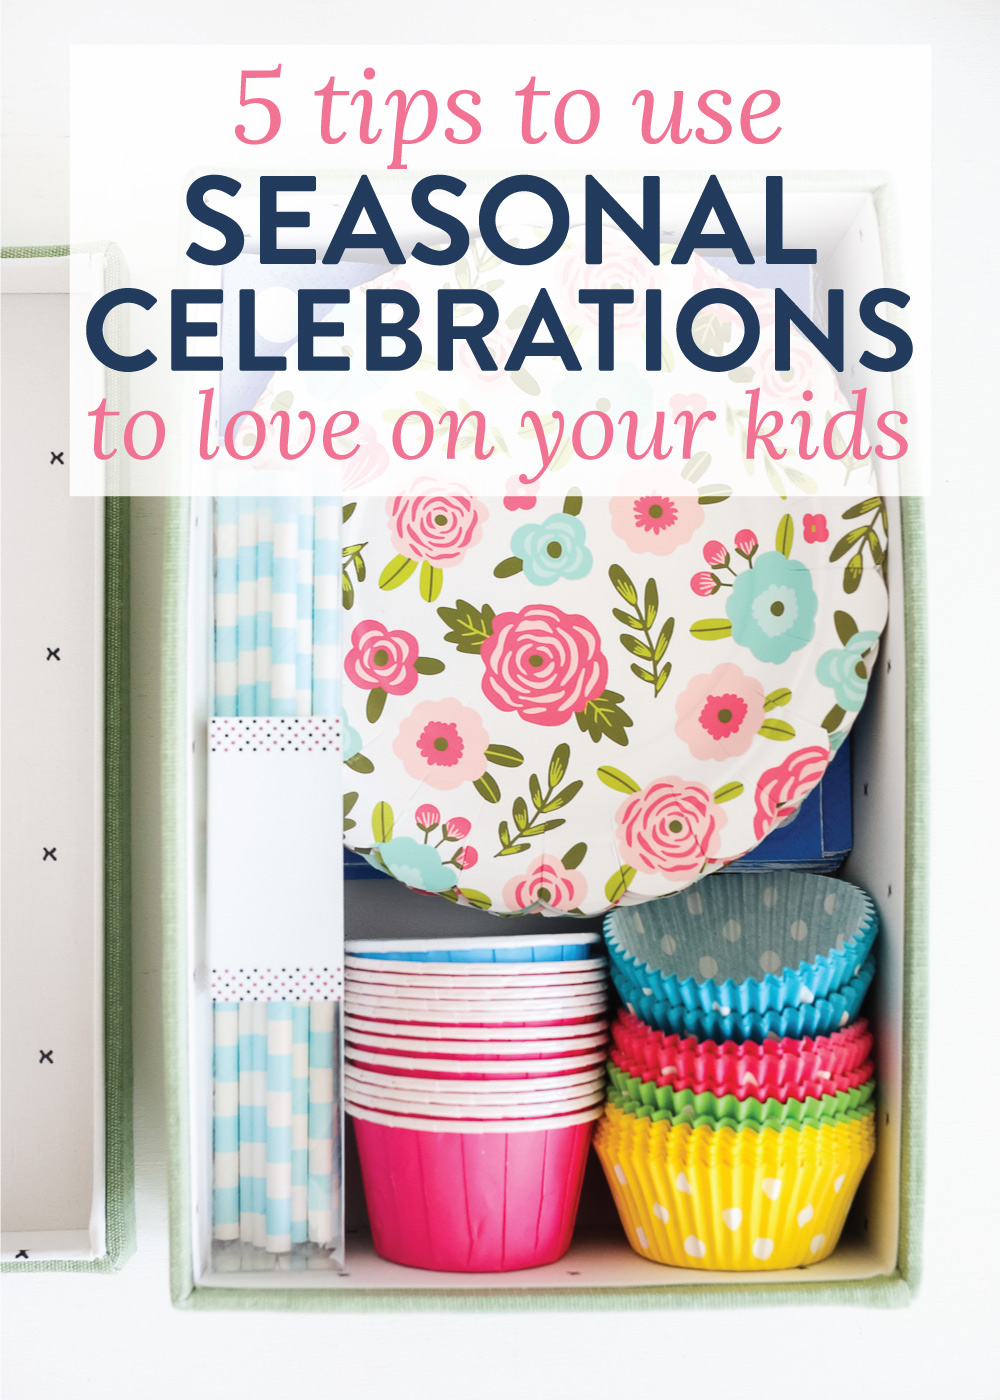 5 Tips To Use Seasonal Celebrations to Love on Your Kids